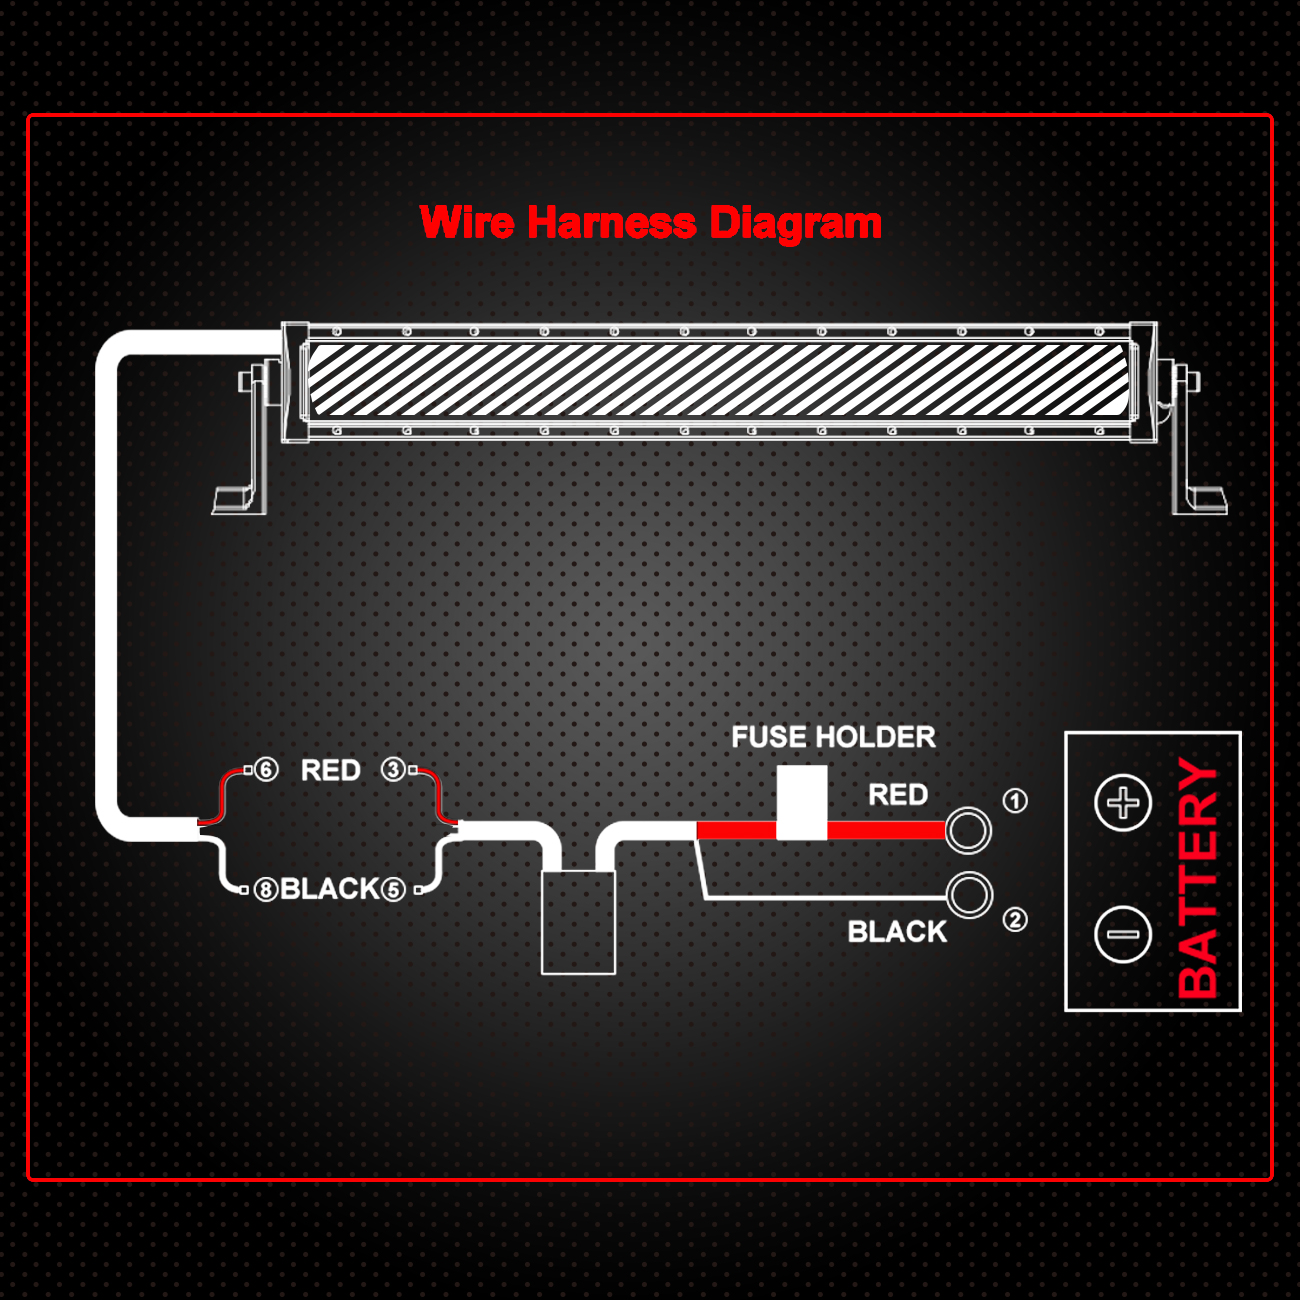 Star Light Bar Wiring Diagram About Harness Universal Led Kit 40a 12v Relay Fuse Remote Wire Routing